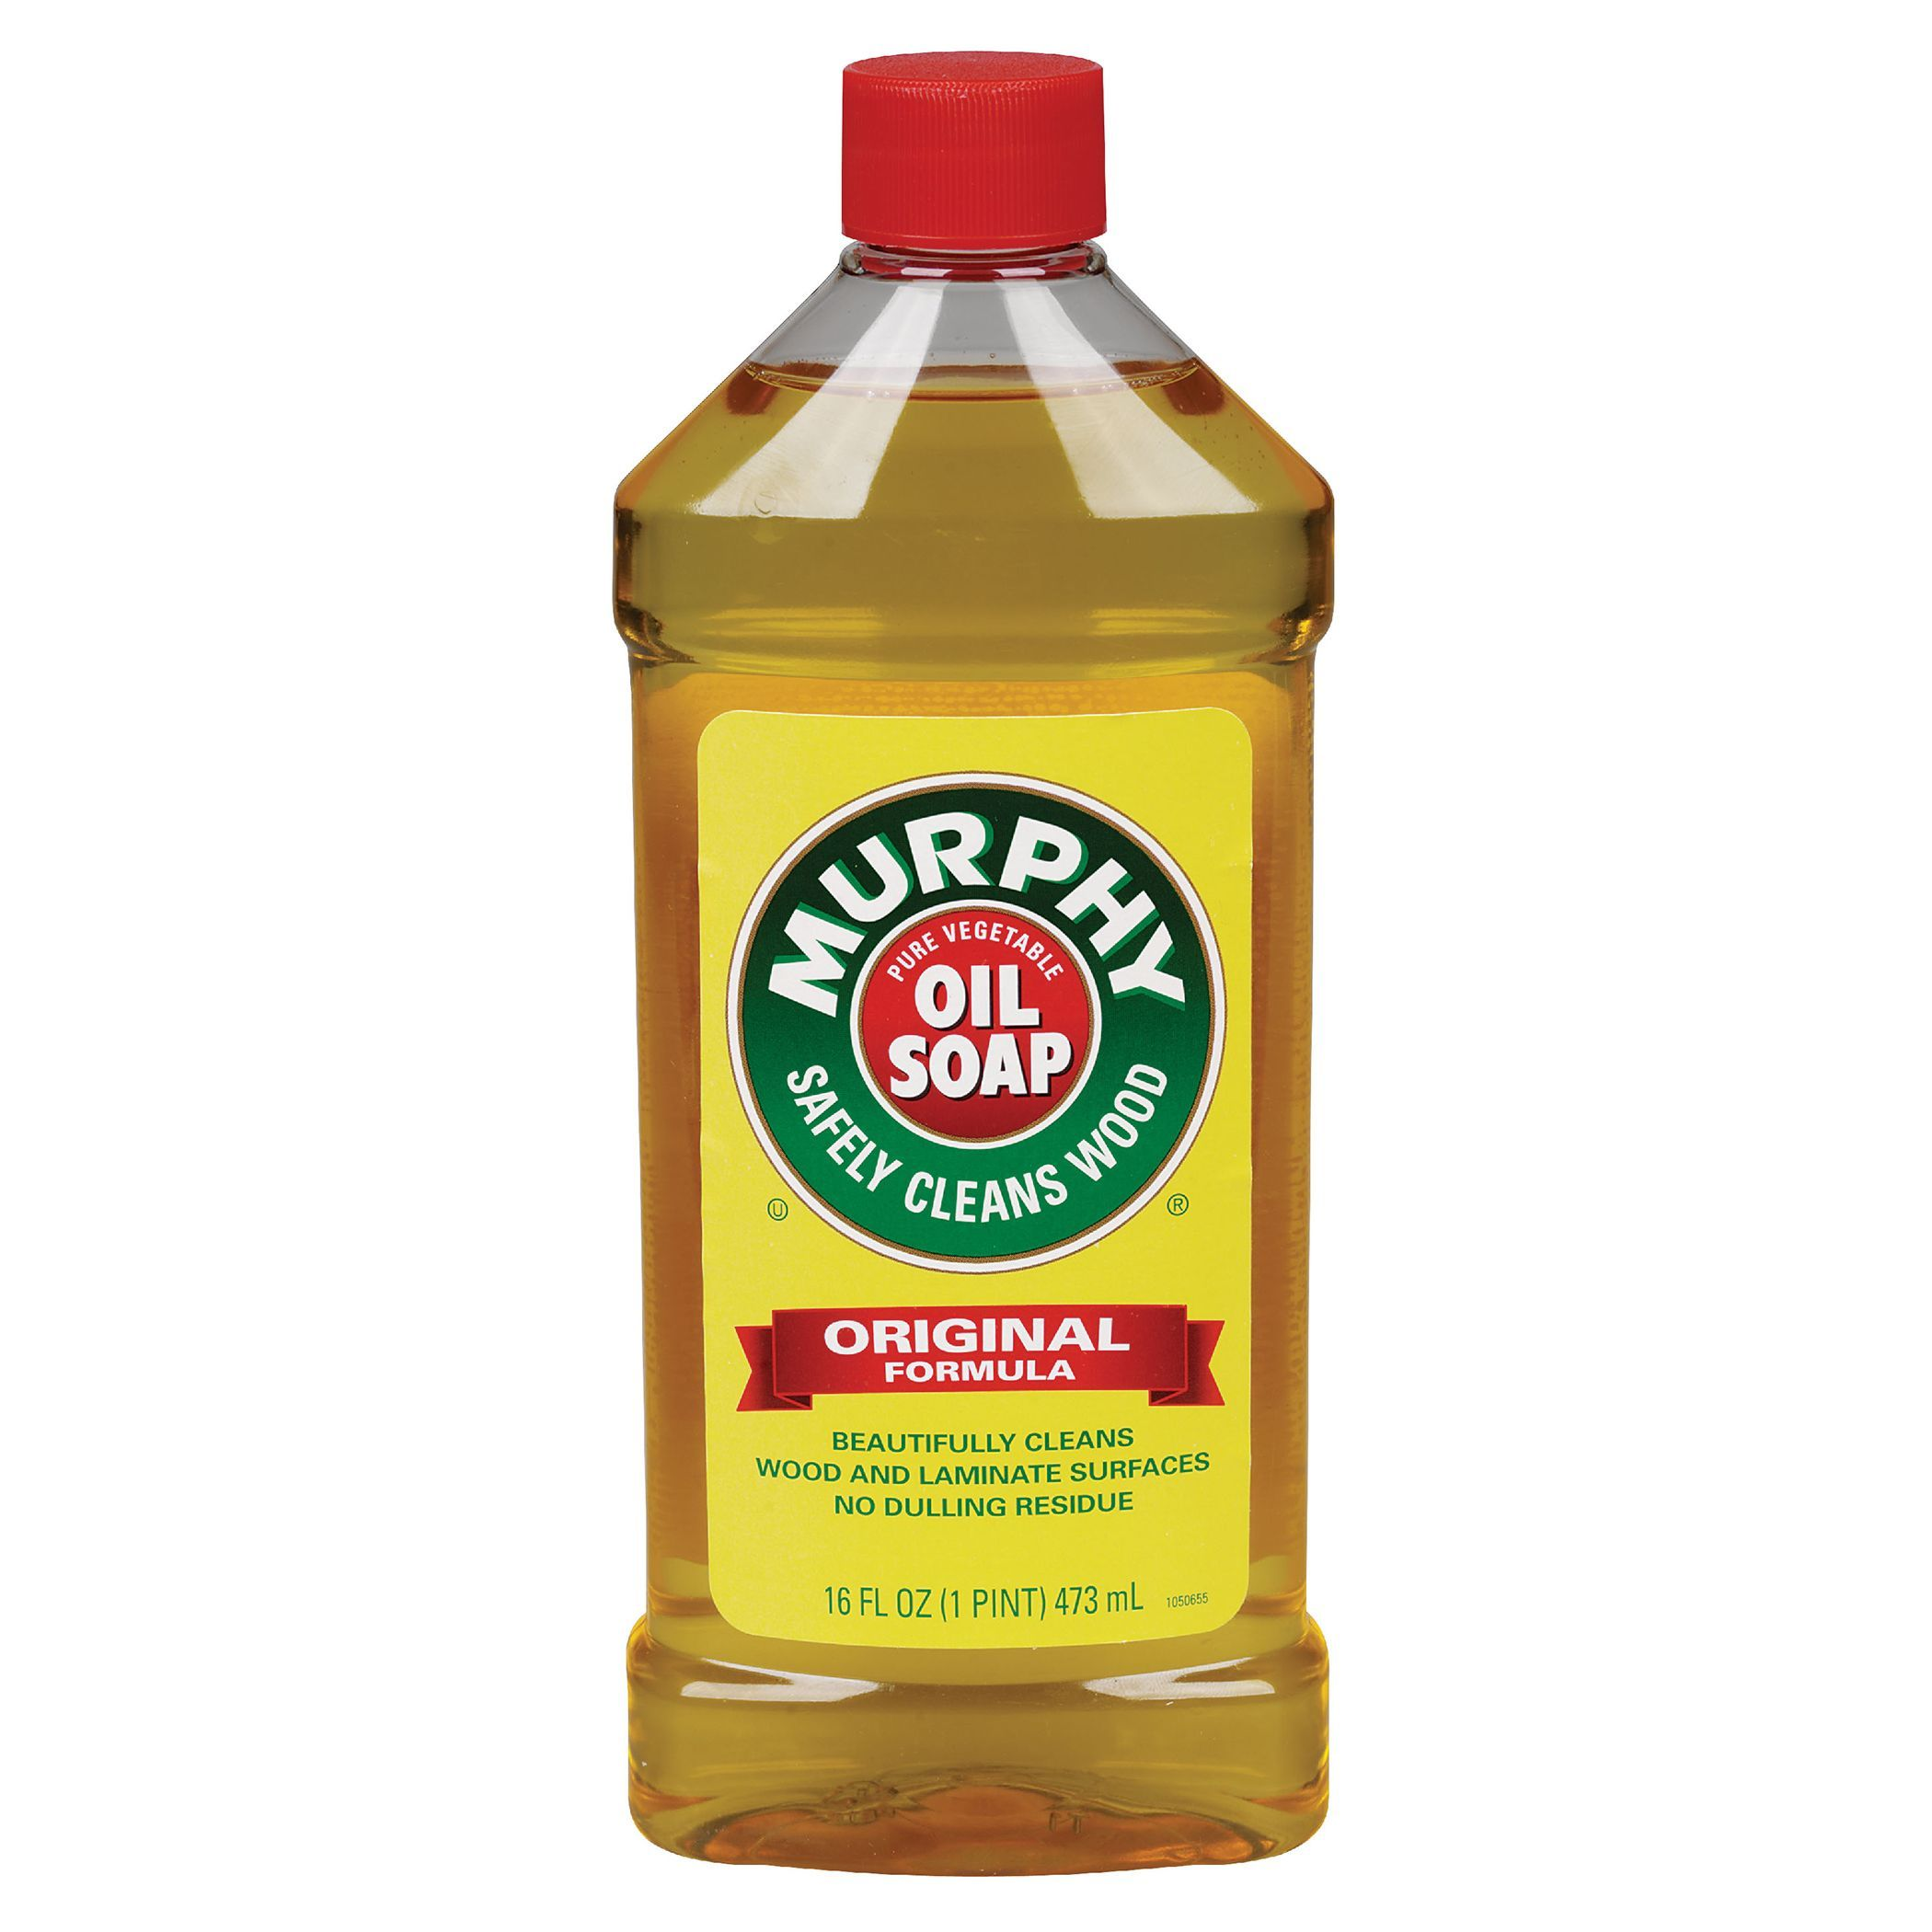 Cleaning hardwood floors with murphy oil soap - Murphy Oil Soap 01131 16 Oz Murphy Oil Soap